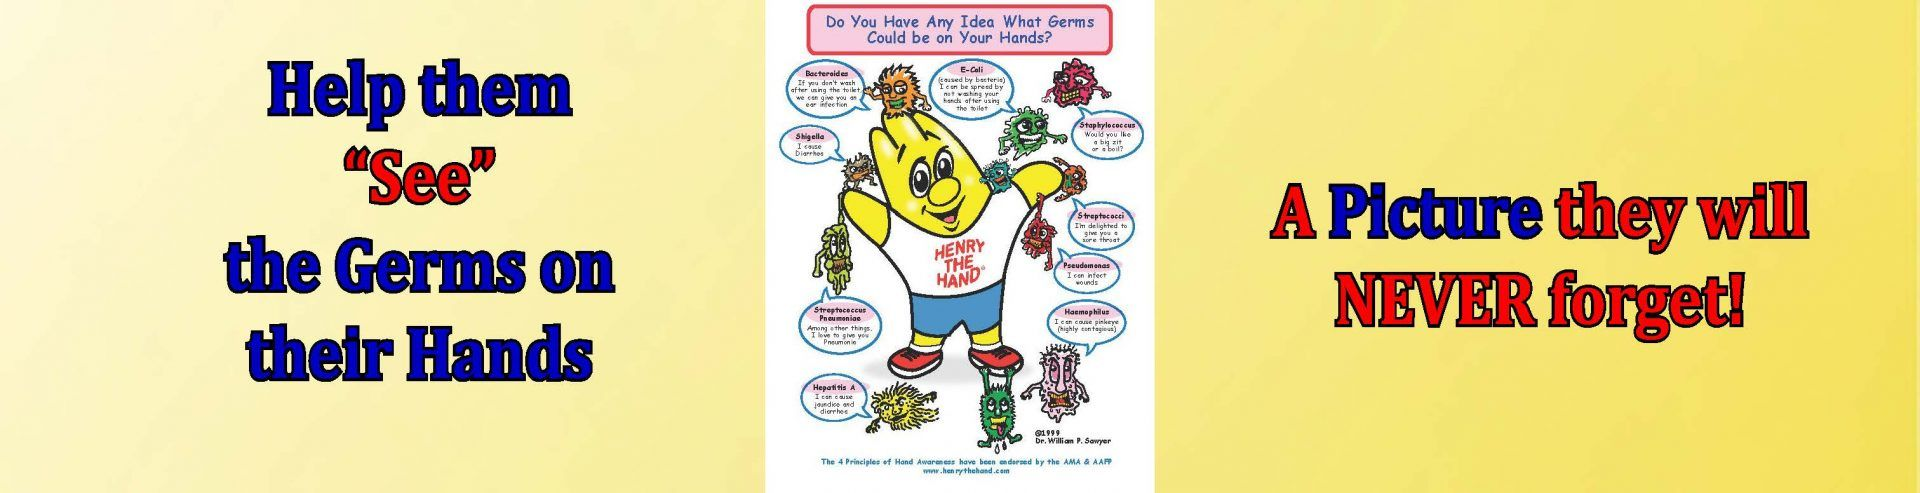 Ad-4-Germs-on-Hands-Poster